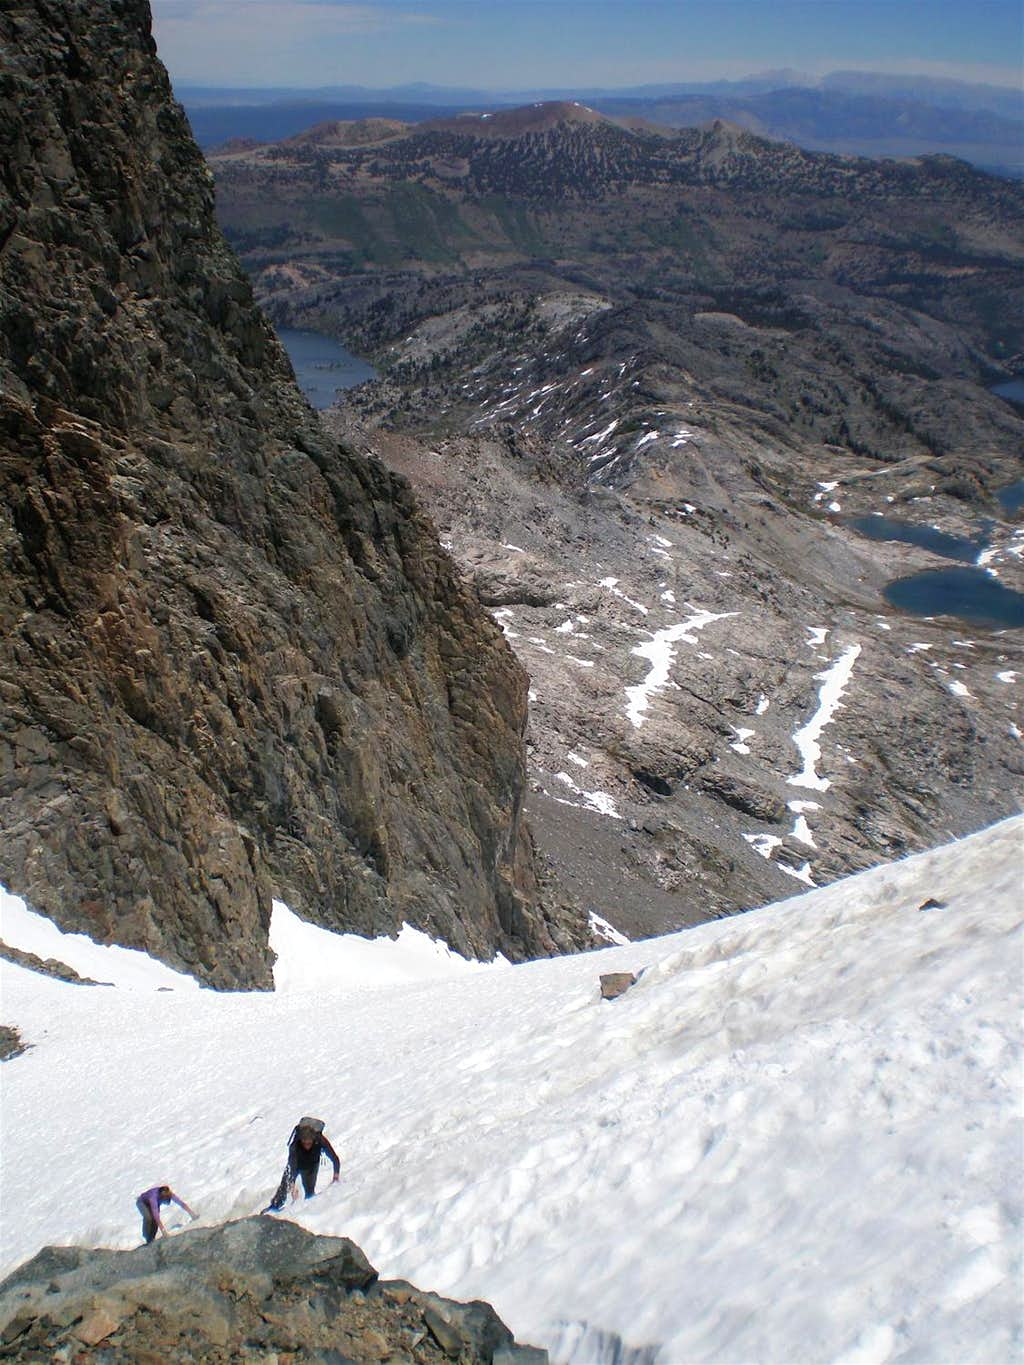 Approaching the start of the north face route